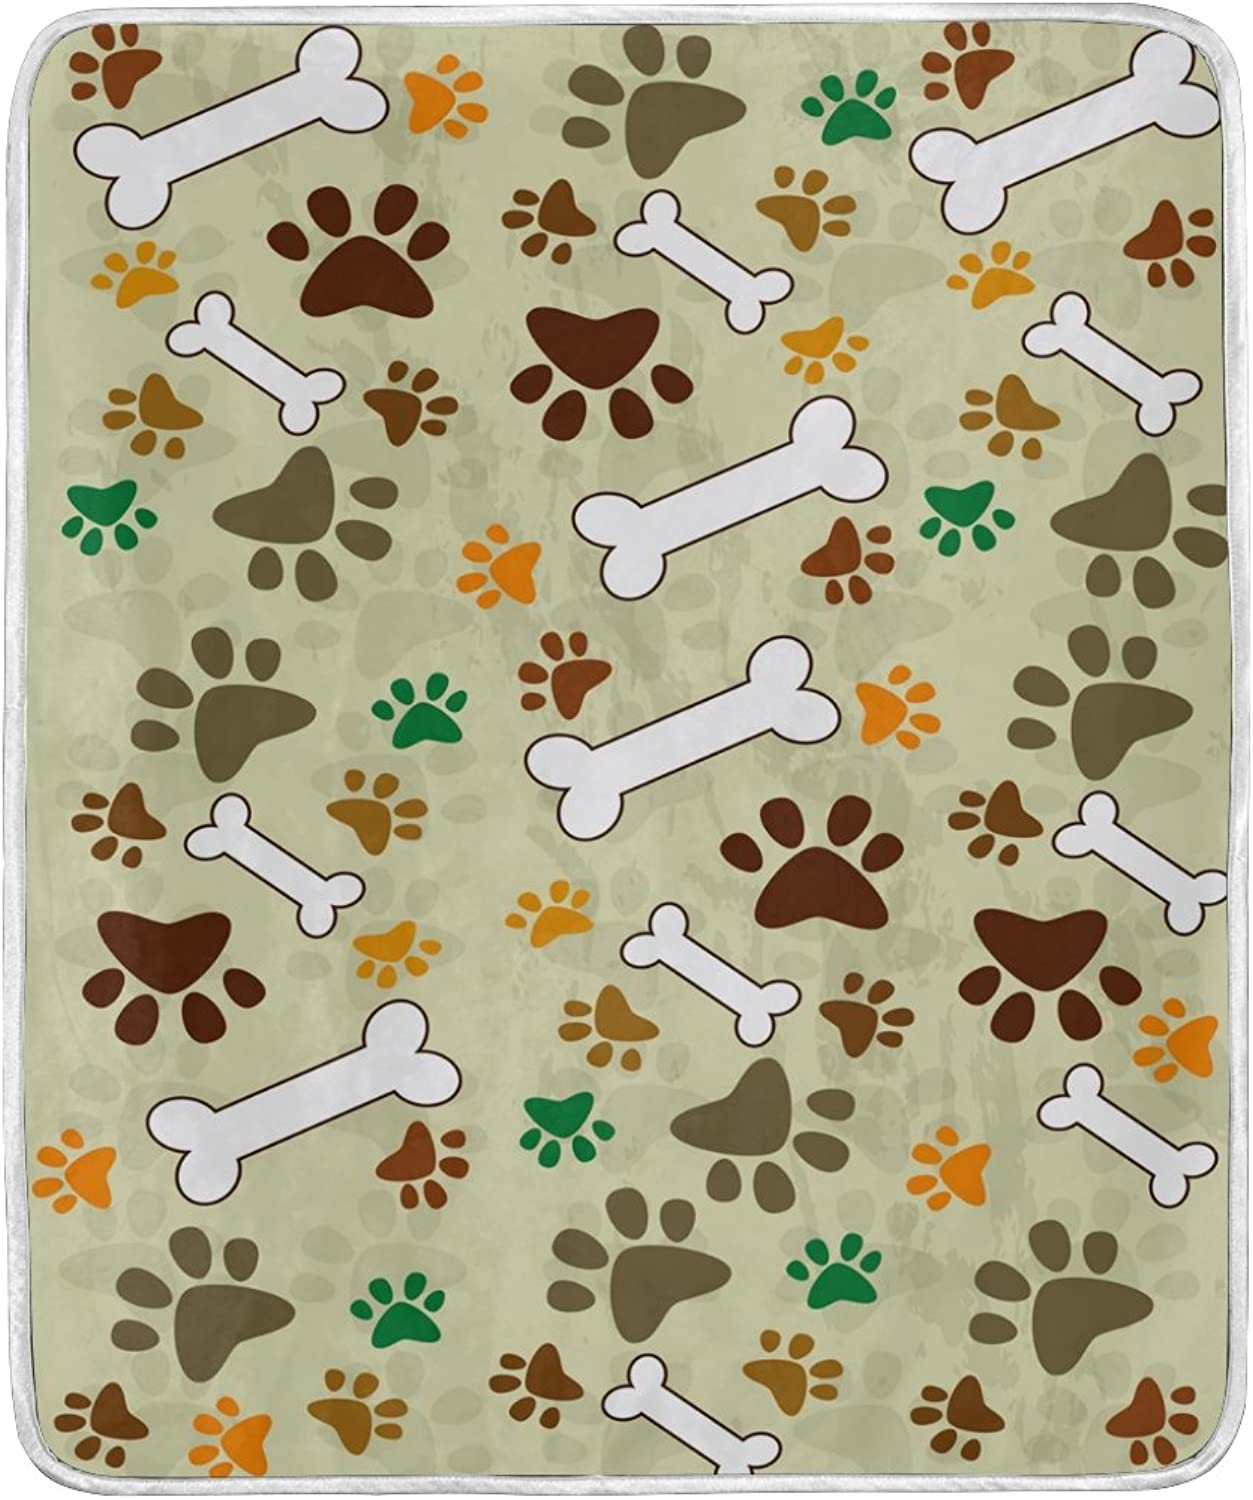 ALAZA Home Decor Vintage Dog Paw Print Bone Blanket Soft Warm Blankets for Bed Couch Sofa Lightweight Travelling Camping 60 x 50 inch Throw Size for Kids Boys Women